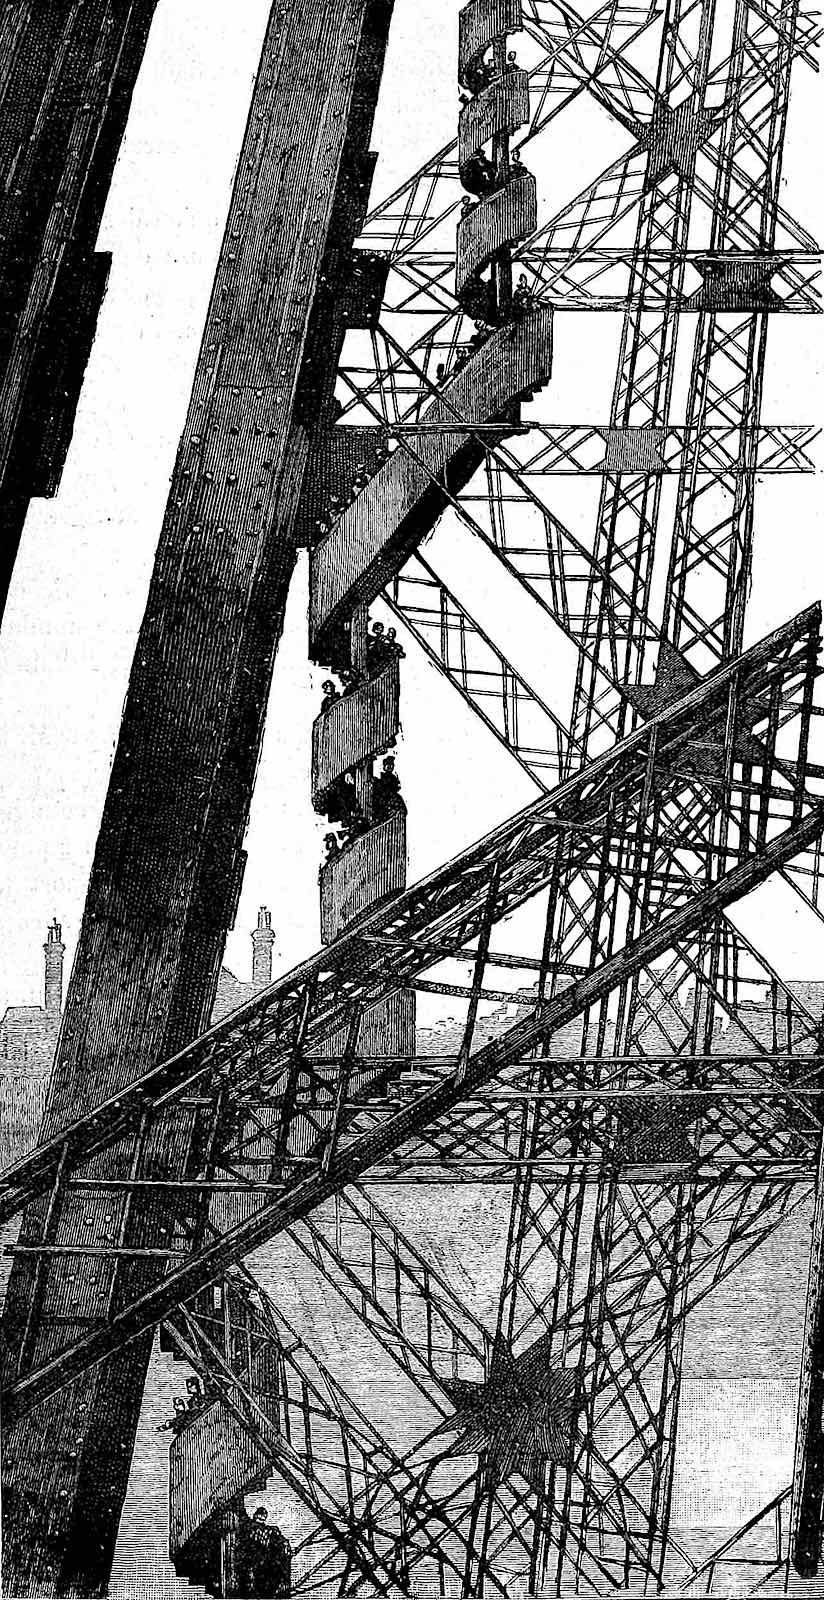 the Eiffel tower stairs at the 1900 Paris World's Fair, an illustration